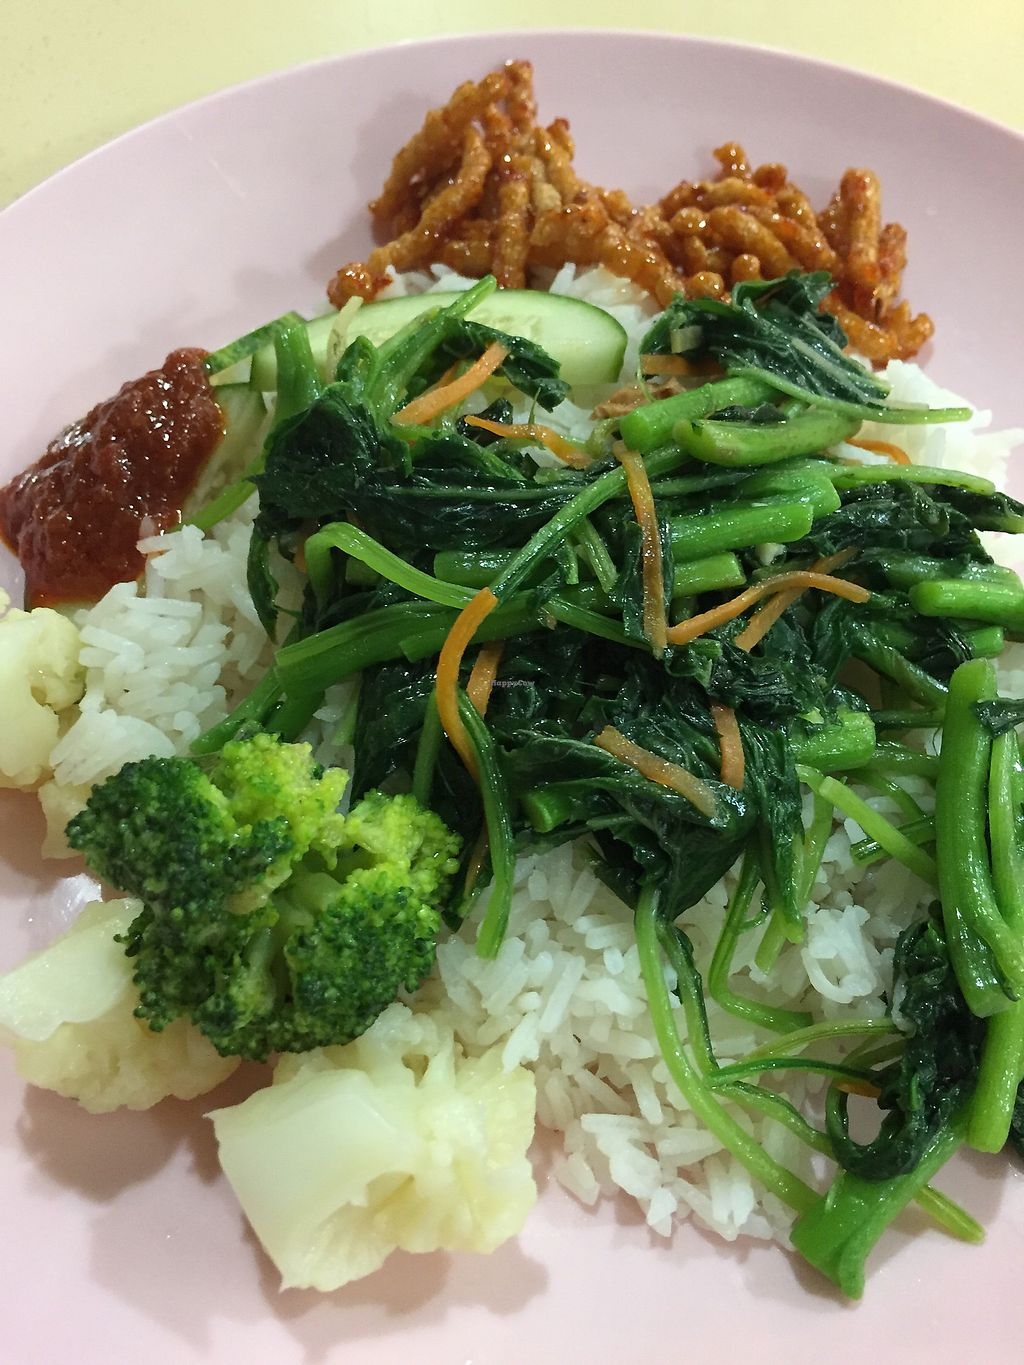 """Photo of CLOSED: Eastern Pure Vegetarian Food  by <a href=""""/members/profile/verywanderful"""">verywanderful</a> <br/>Nasi Lemak. coconut rice with dishes <br/> August 20, 2017  - <a href='/contact/abuse/image/98465/294765'>Report</a>"""